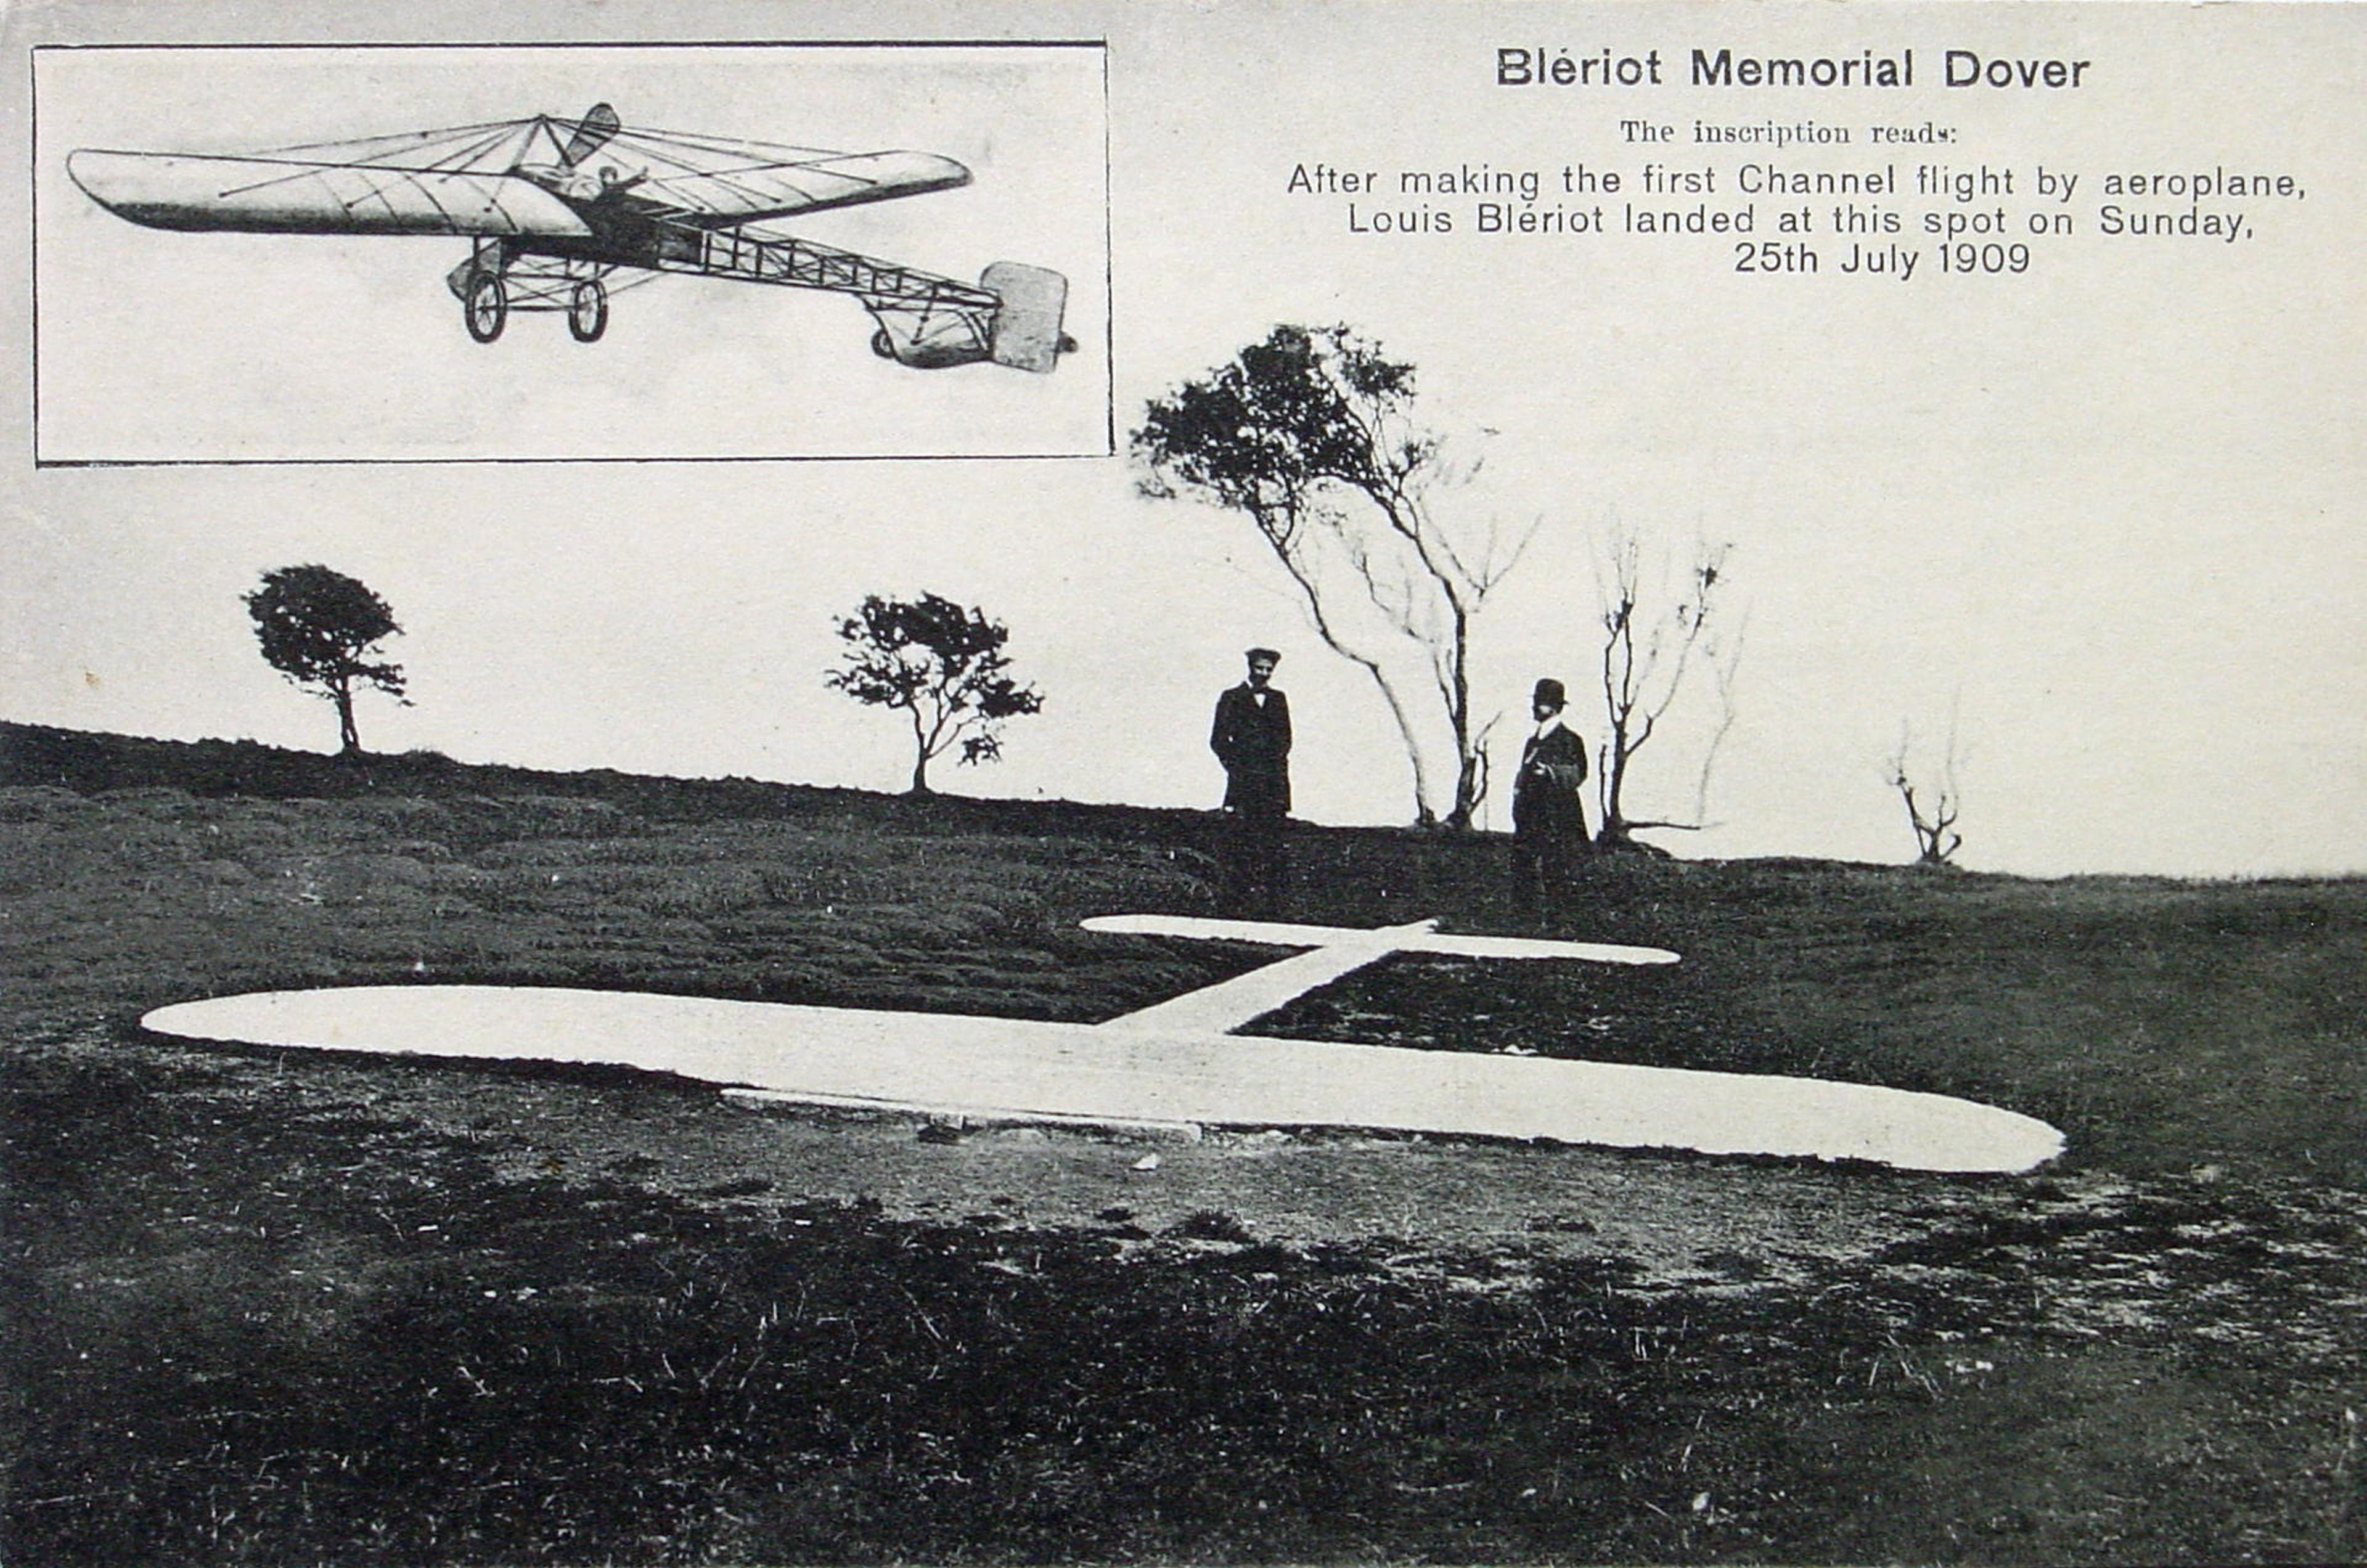 The Bleriot Memorial in Dover, England, shortly after it was laid.